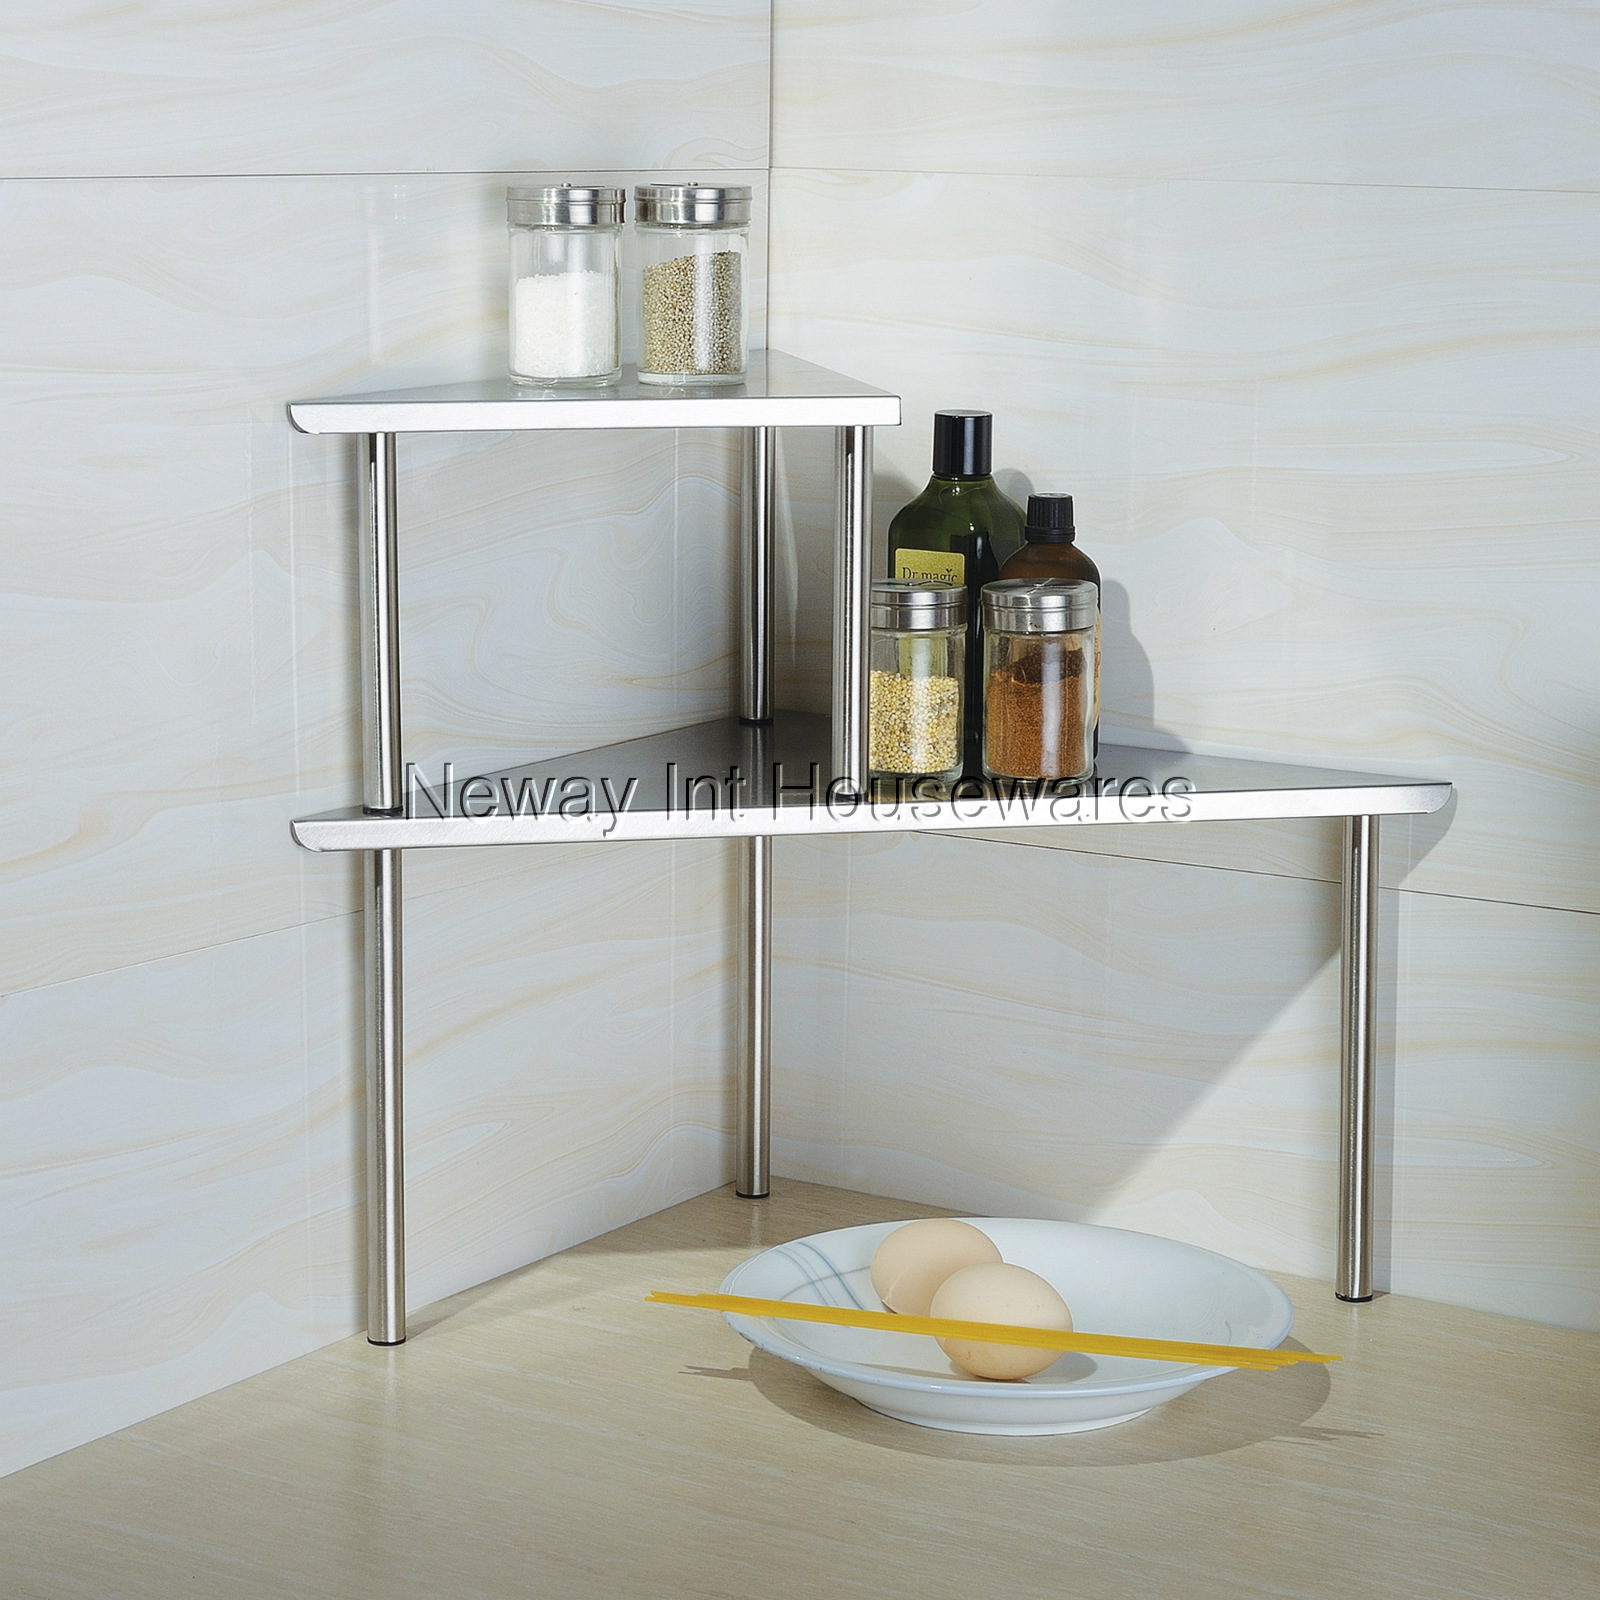 Larger View. Cook N Home Stainless Steel Corner Storage Shelf Triangle & Cook N Home Store : Cook N Home Stainless Steel Corner Storage Shelf ...